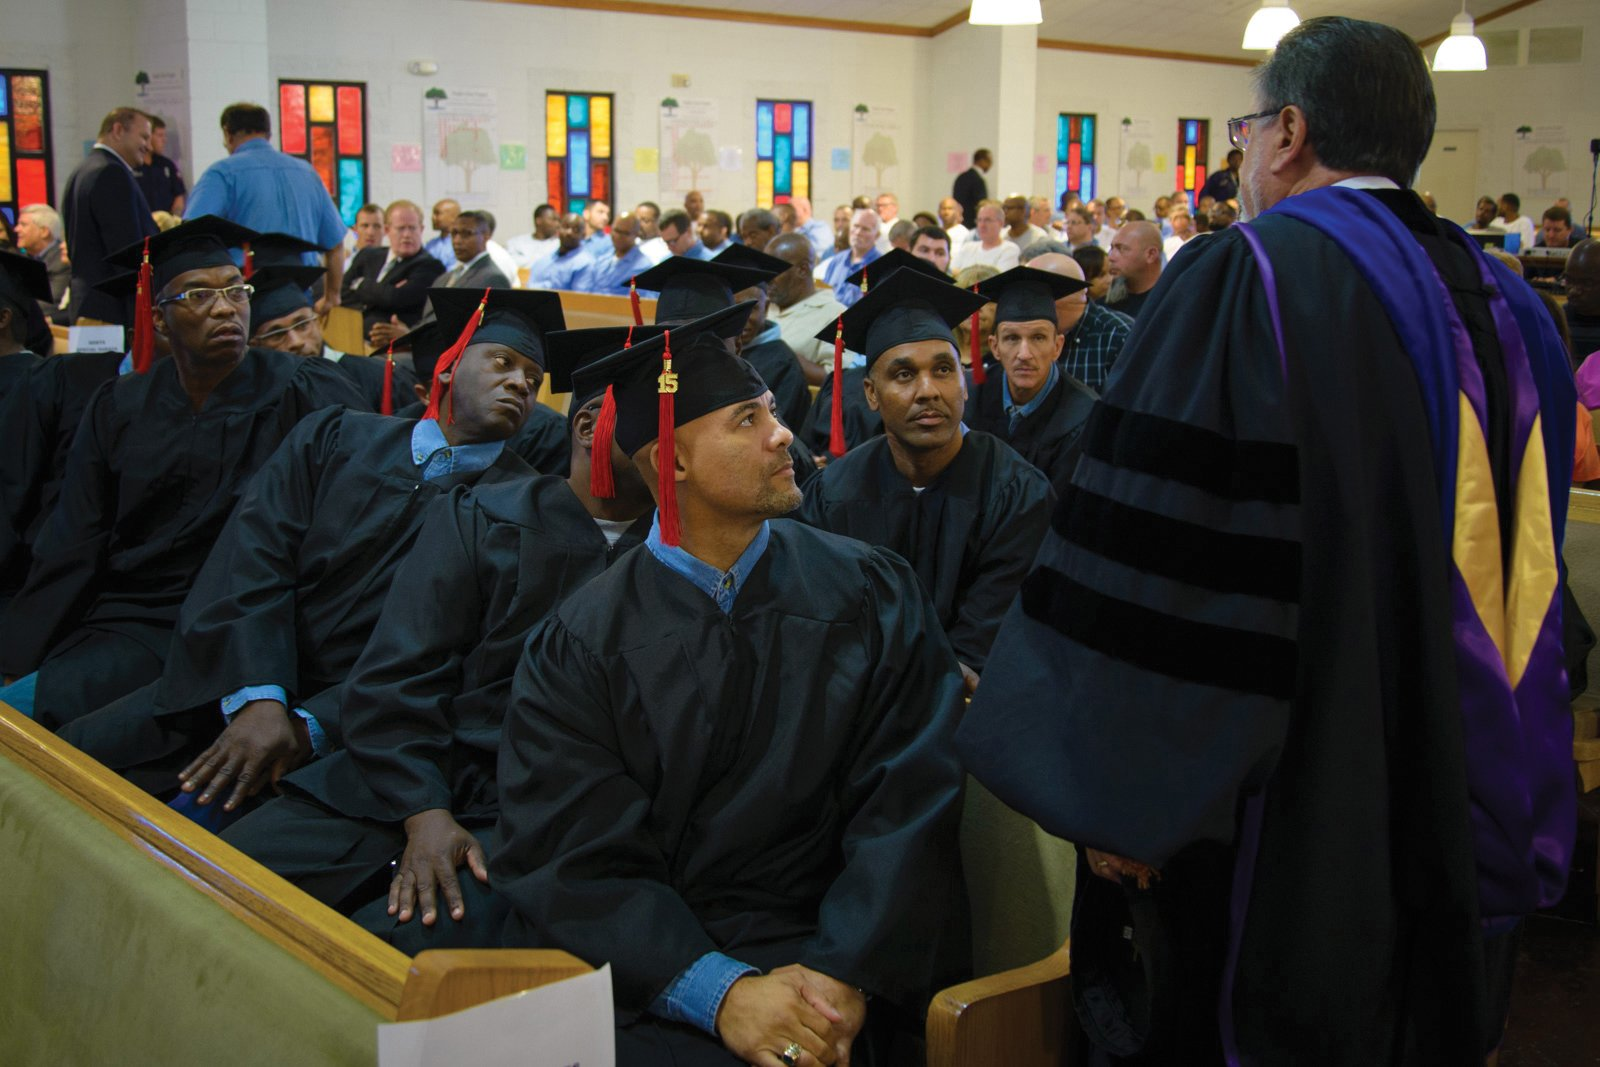 Male inmates participate in a graduation ceremony with New Orleans Theological Seminary's Leavell College at Louisiana State Penitentiary in Angola, Louisiana, in 2015. Photo courtesy of New Orleans Theological Seminary